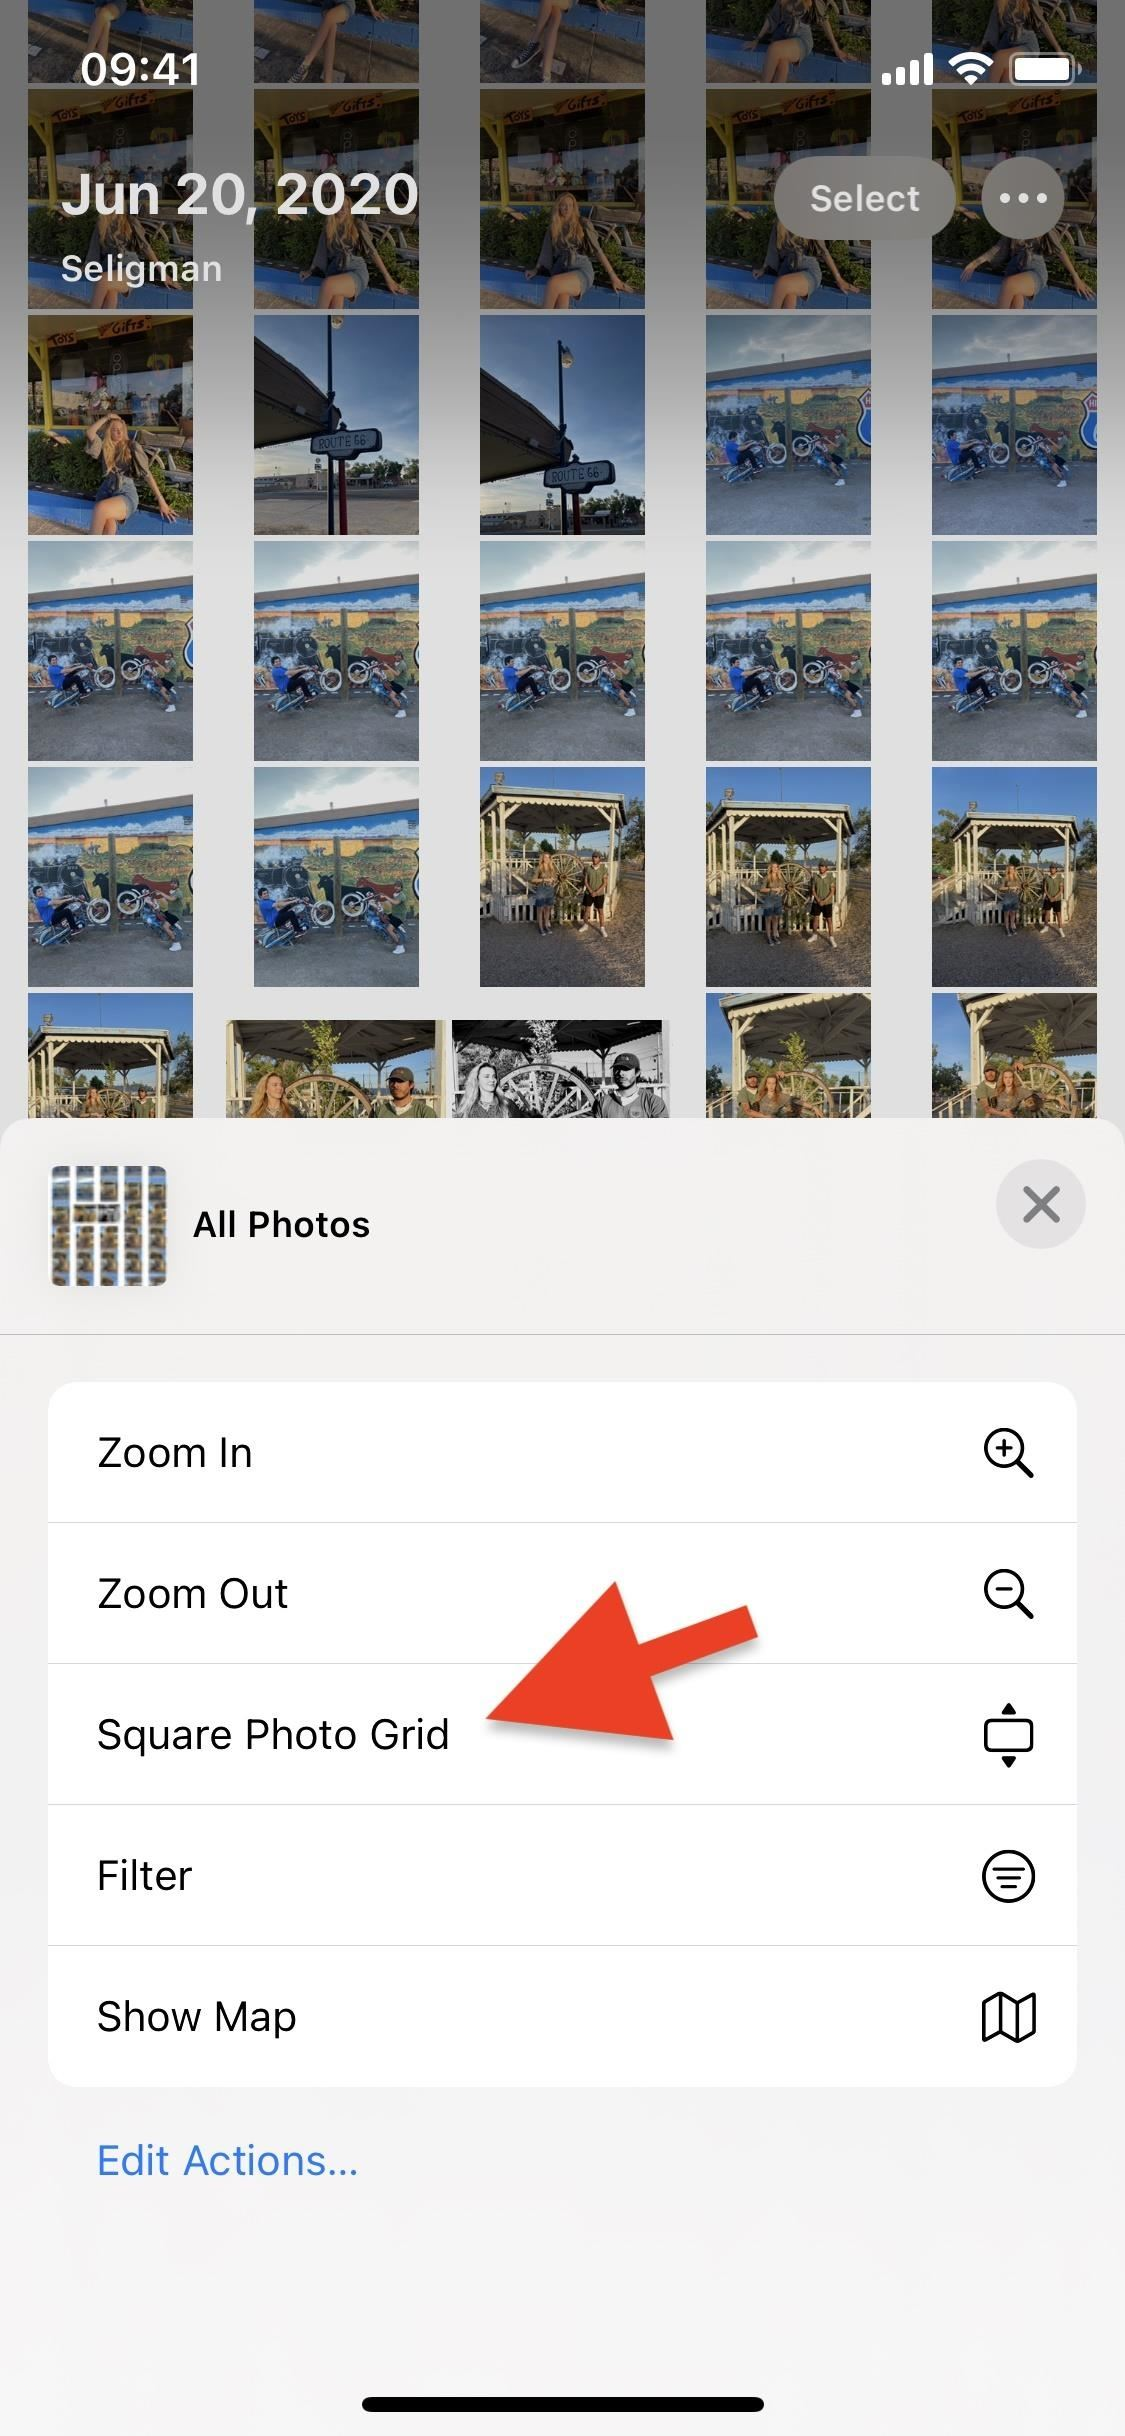 Show Images & Videos in Their Correct Aspect Ratio & Orientation When Viewing a Grid in Photos